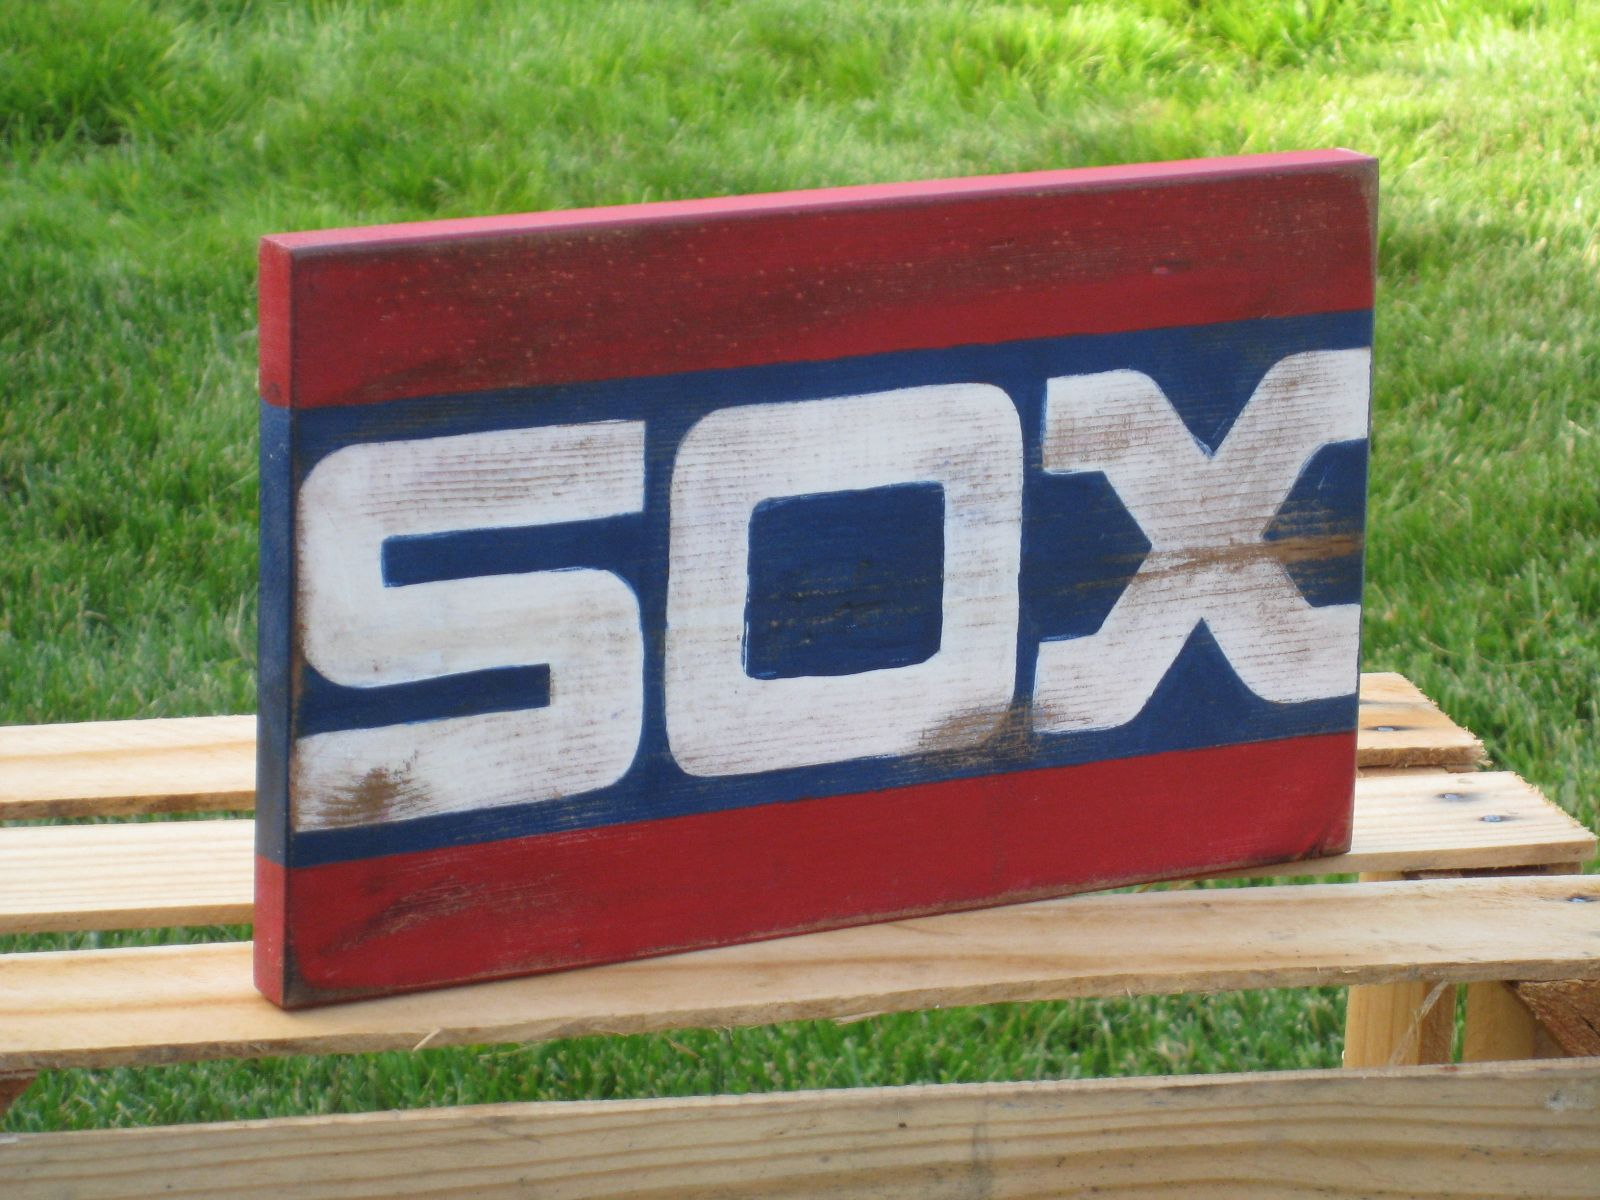 chicago white sox hand painted, sign with old school sox logo 2005